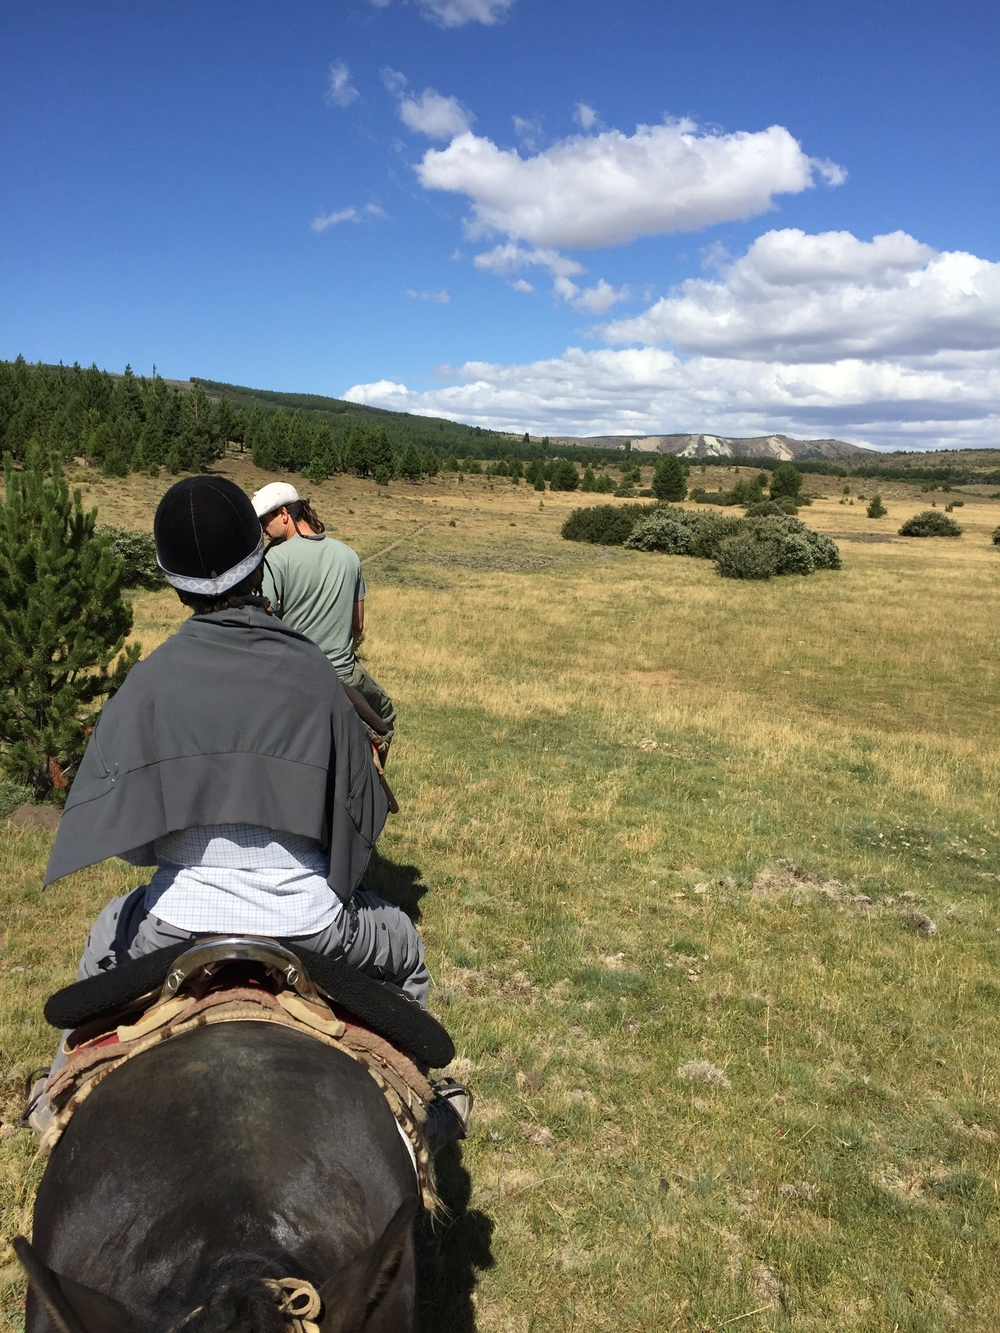 Horseback riding on the Patagonian steppe.